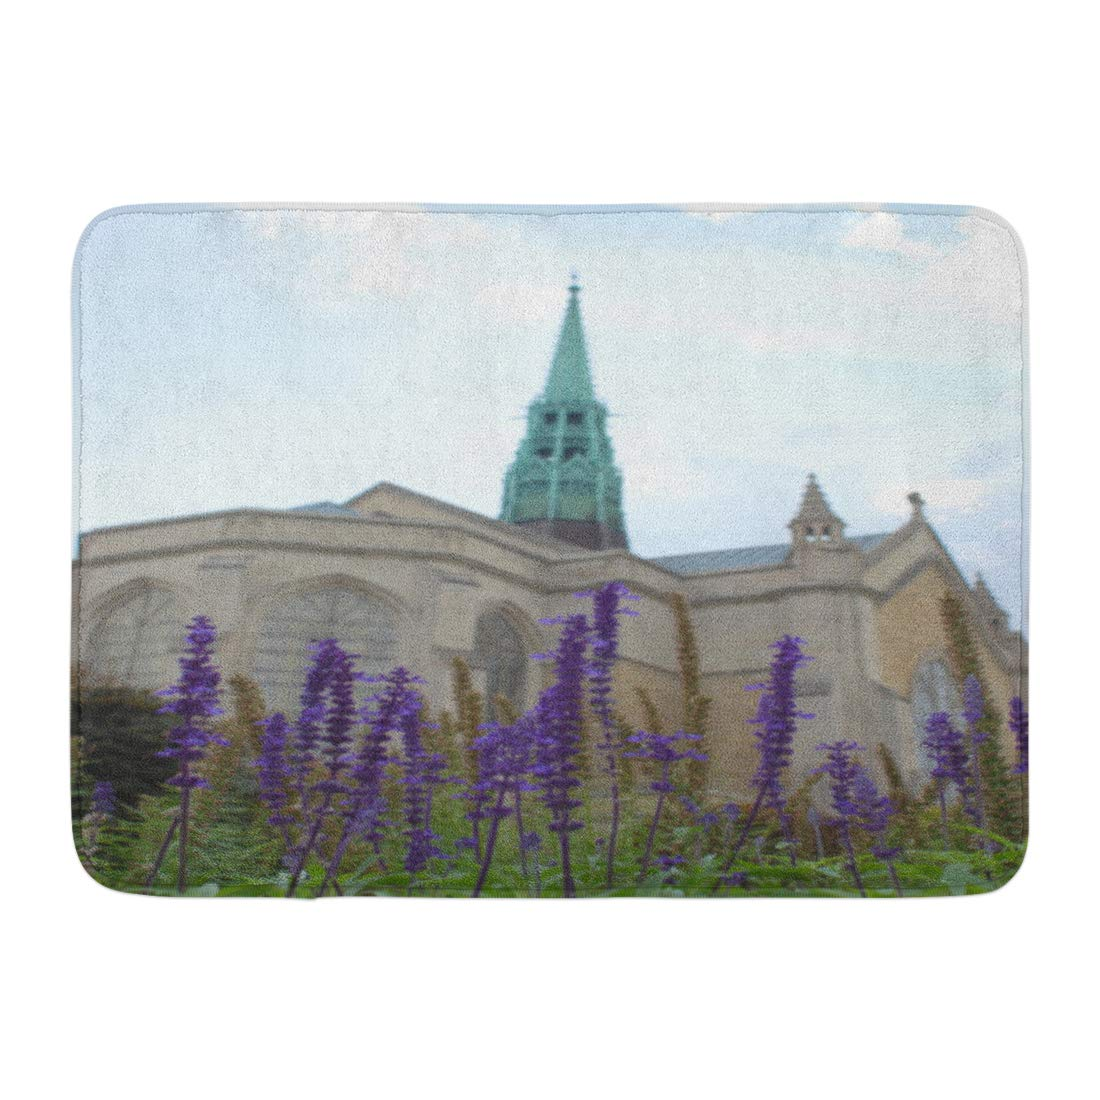 GODPOK Looking Up at Purple Spikes of Perennial Salvia in Foreground Stone Church with Green Verdigris Copper Rug Doormat Bath Mat 23.6x15.7 inch